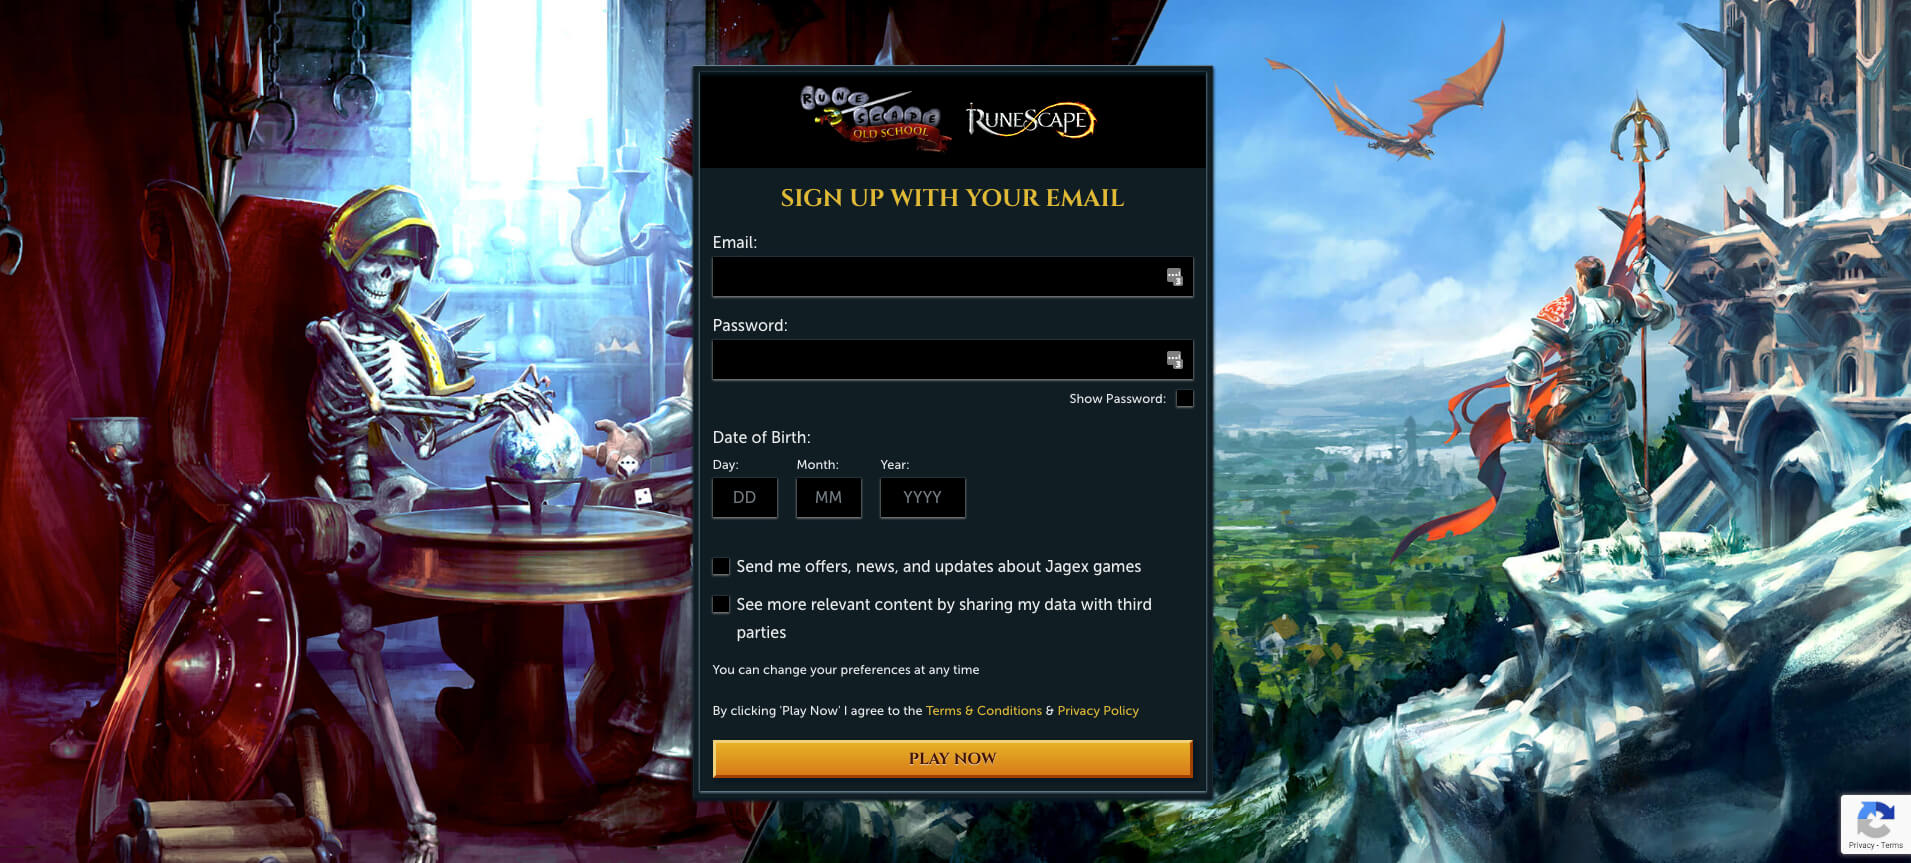 A screenshot of the RuneScape account creation page